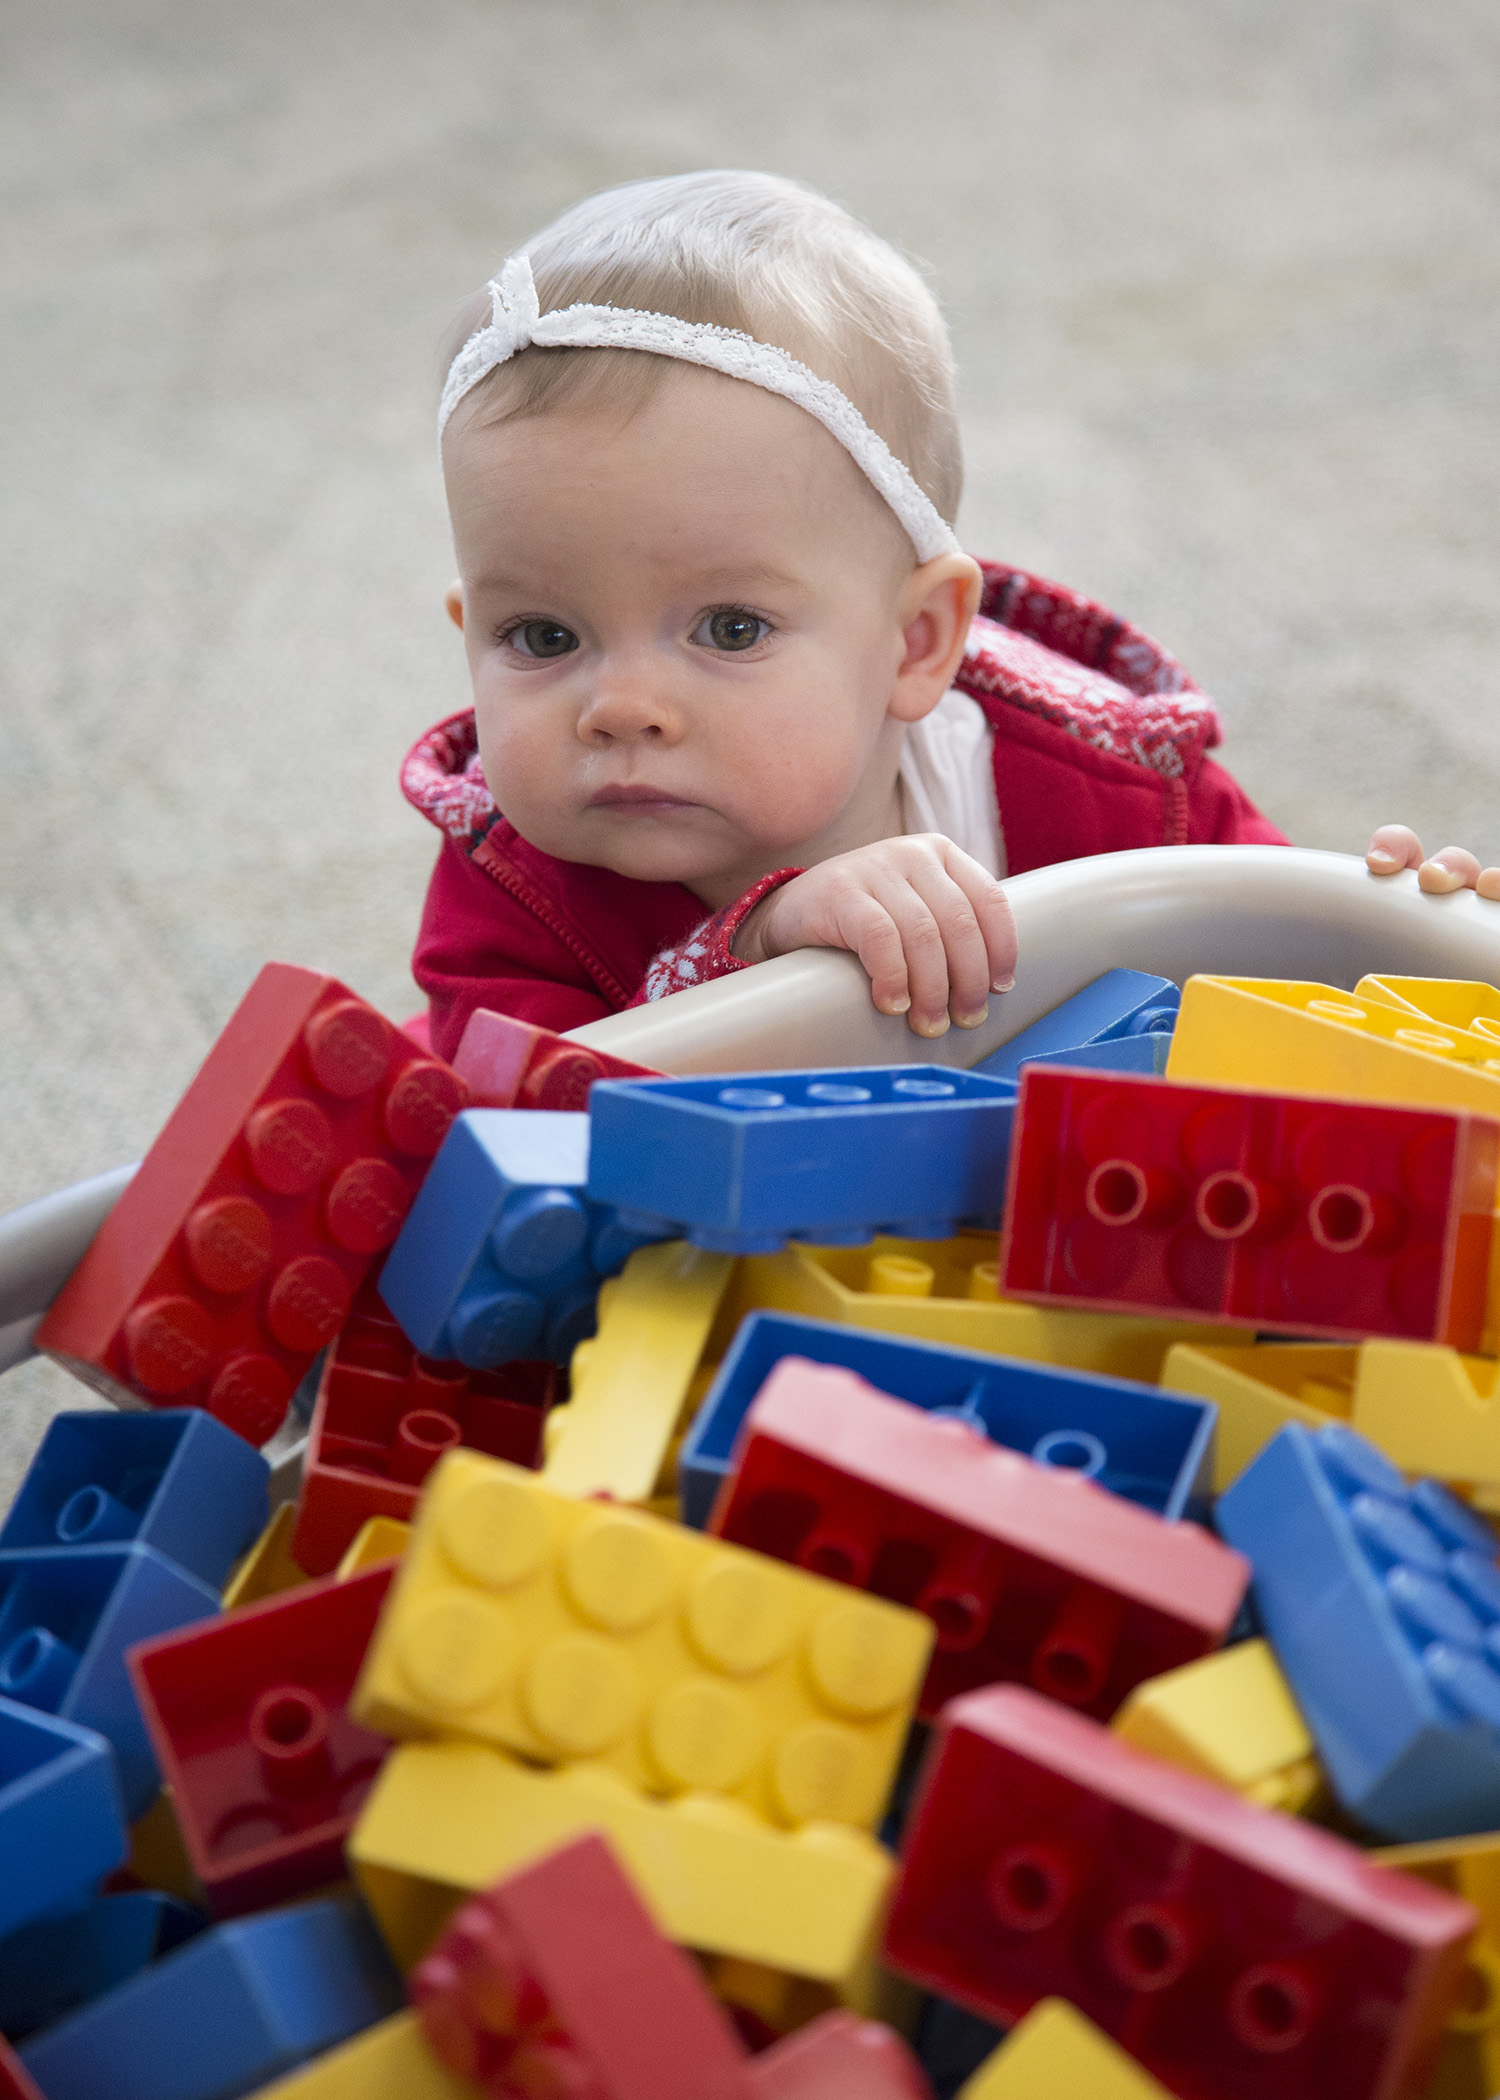 observations miss autism symptoms in young children